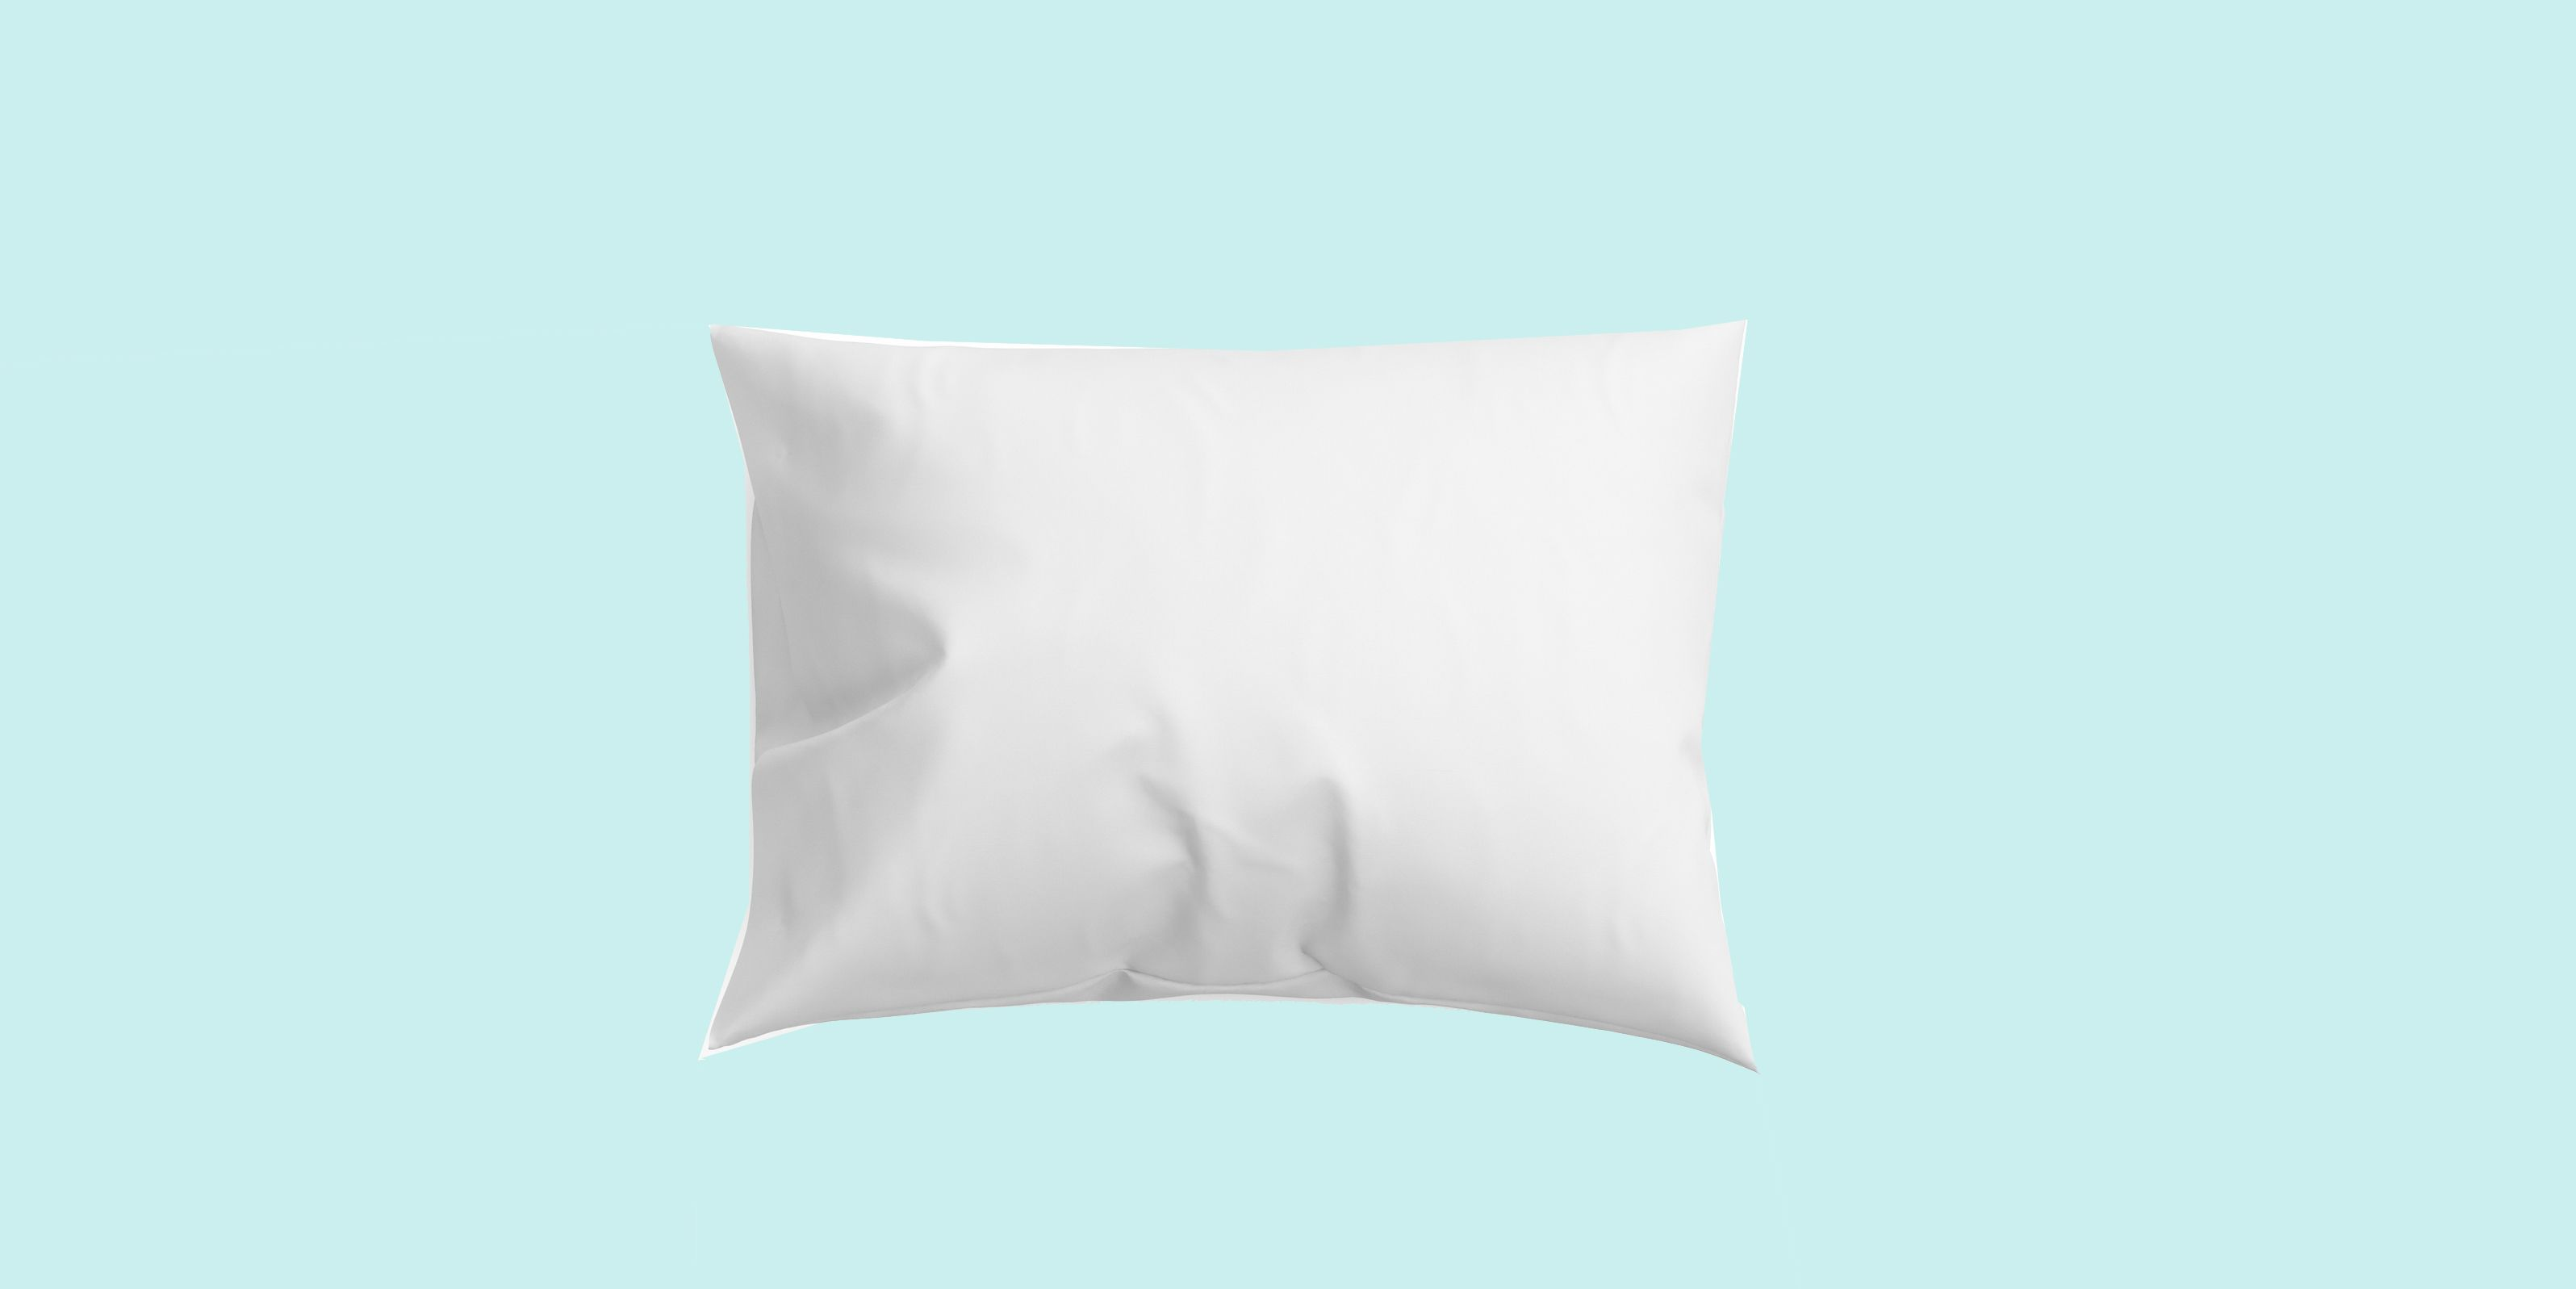 11 Best Pillows for Neck Pain, According to Physicians and Sleep Experts